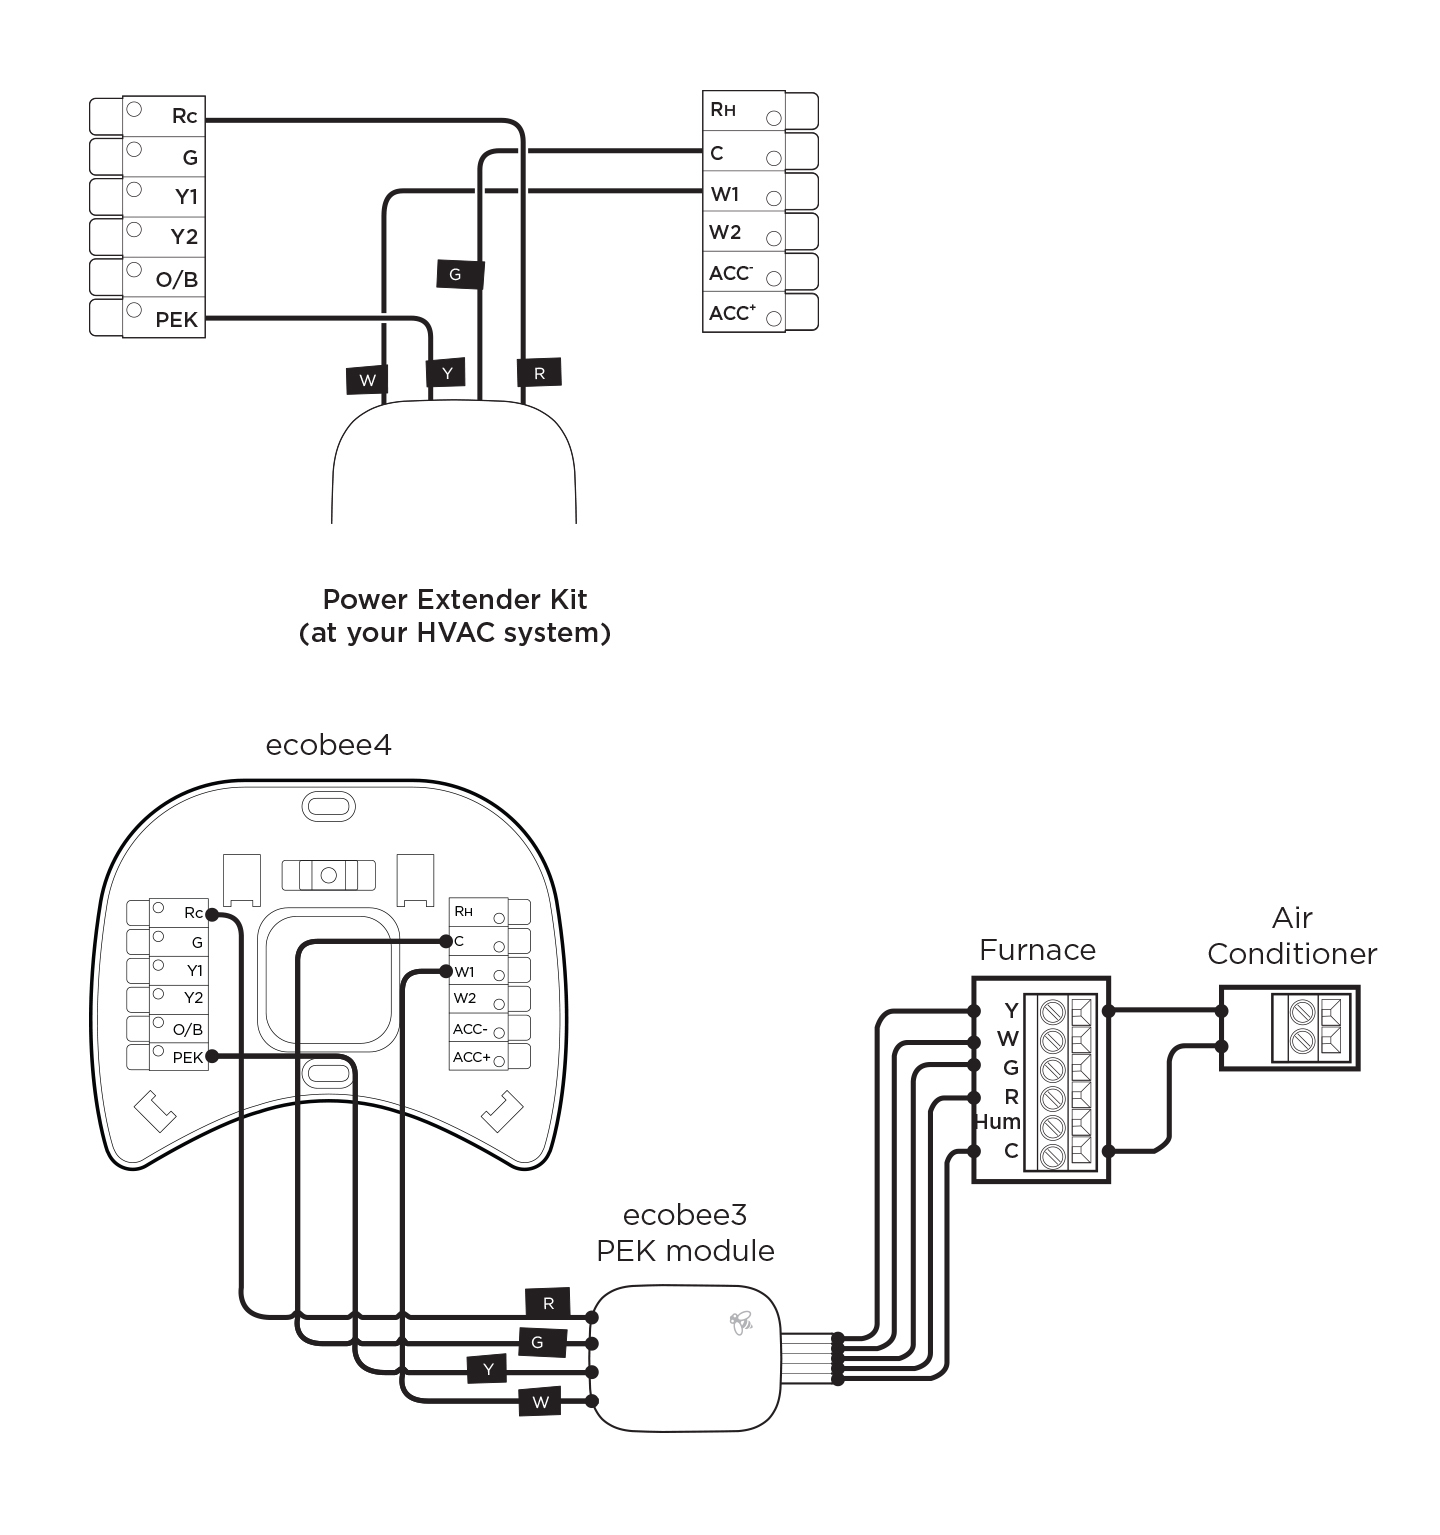 I'm Upgrading From Ecobee3 To Ecobee4, What Wiring Changes Do I Need - Ecobee Wiring Diagram